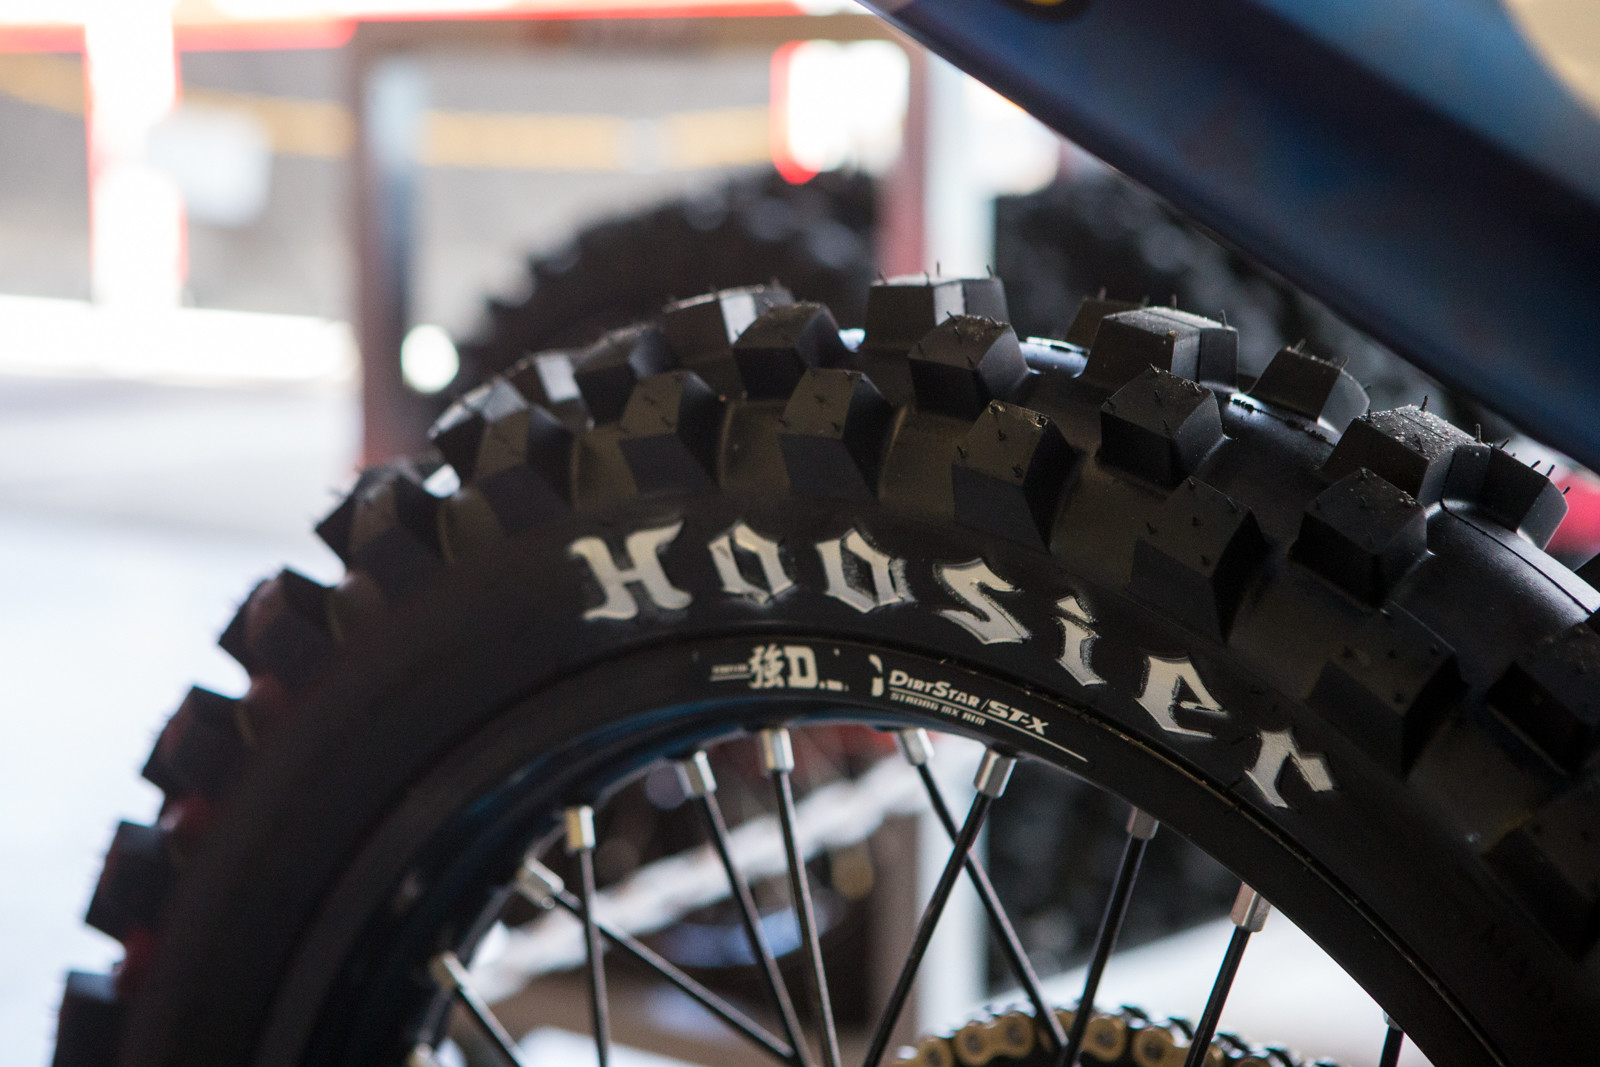 There's some very unique rubber aboard, as Hoosier is working with the team to develop tires. From our brief understanding, Hoosier is focused on offering a race level tire, not quite a tire for general play riding use. Expect something like a Dunlop proto/race tire, but for the public.